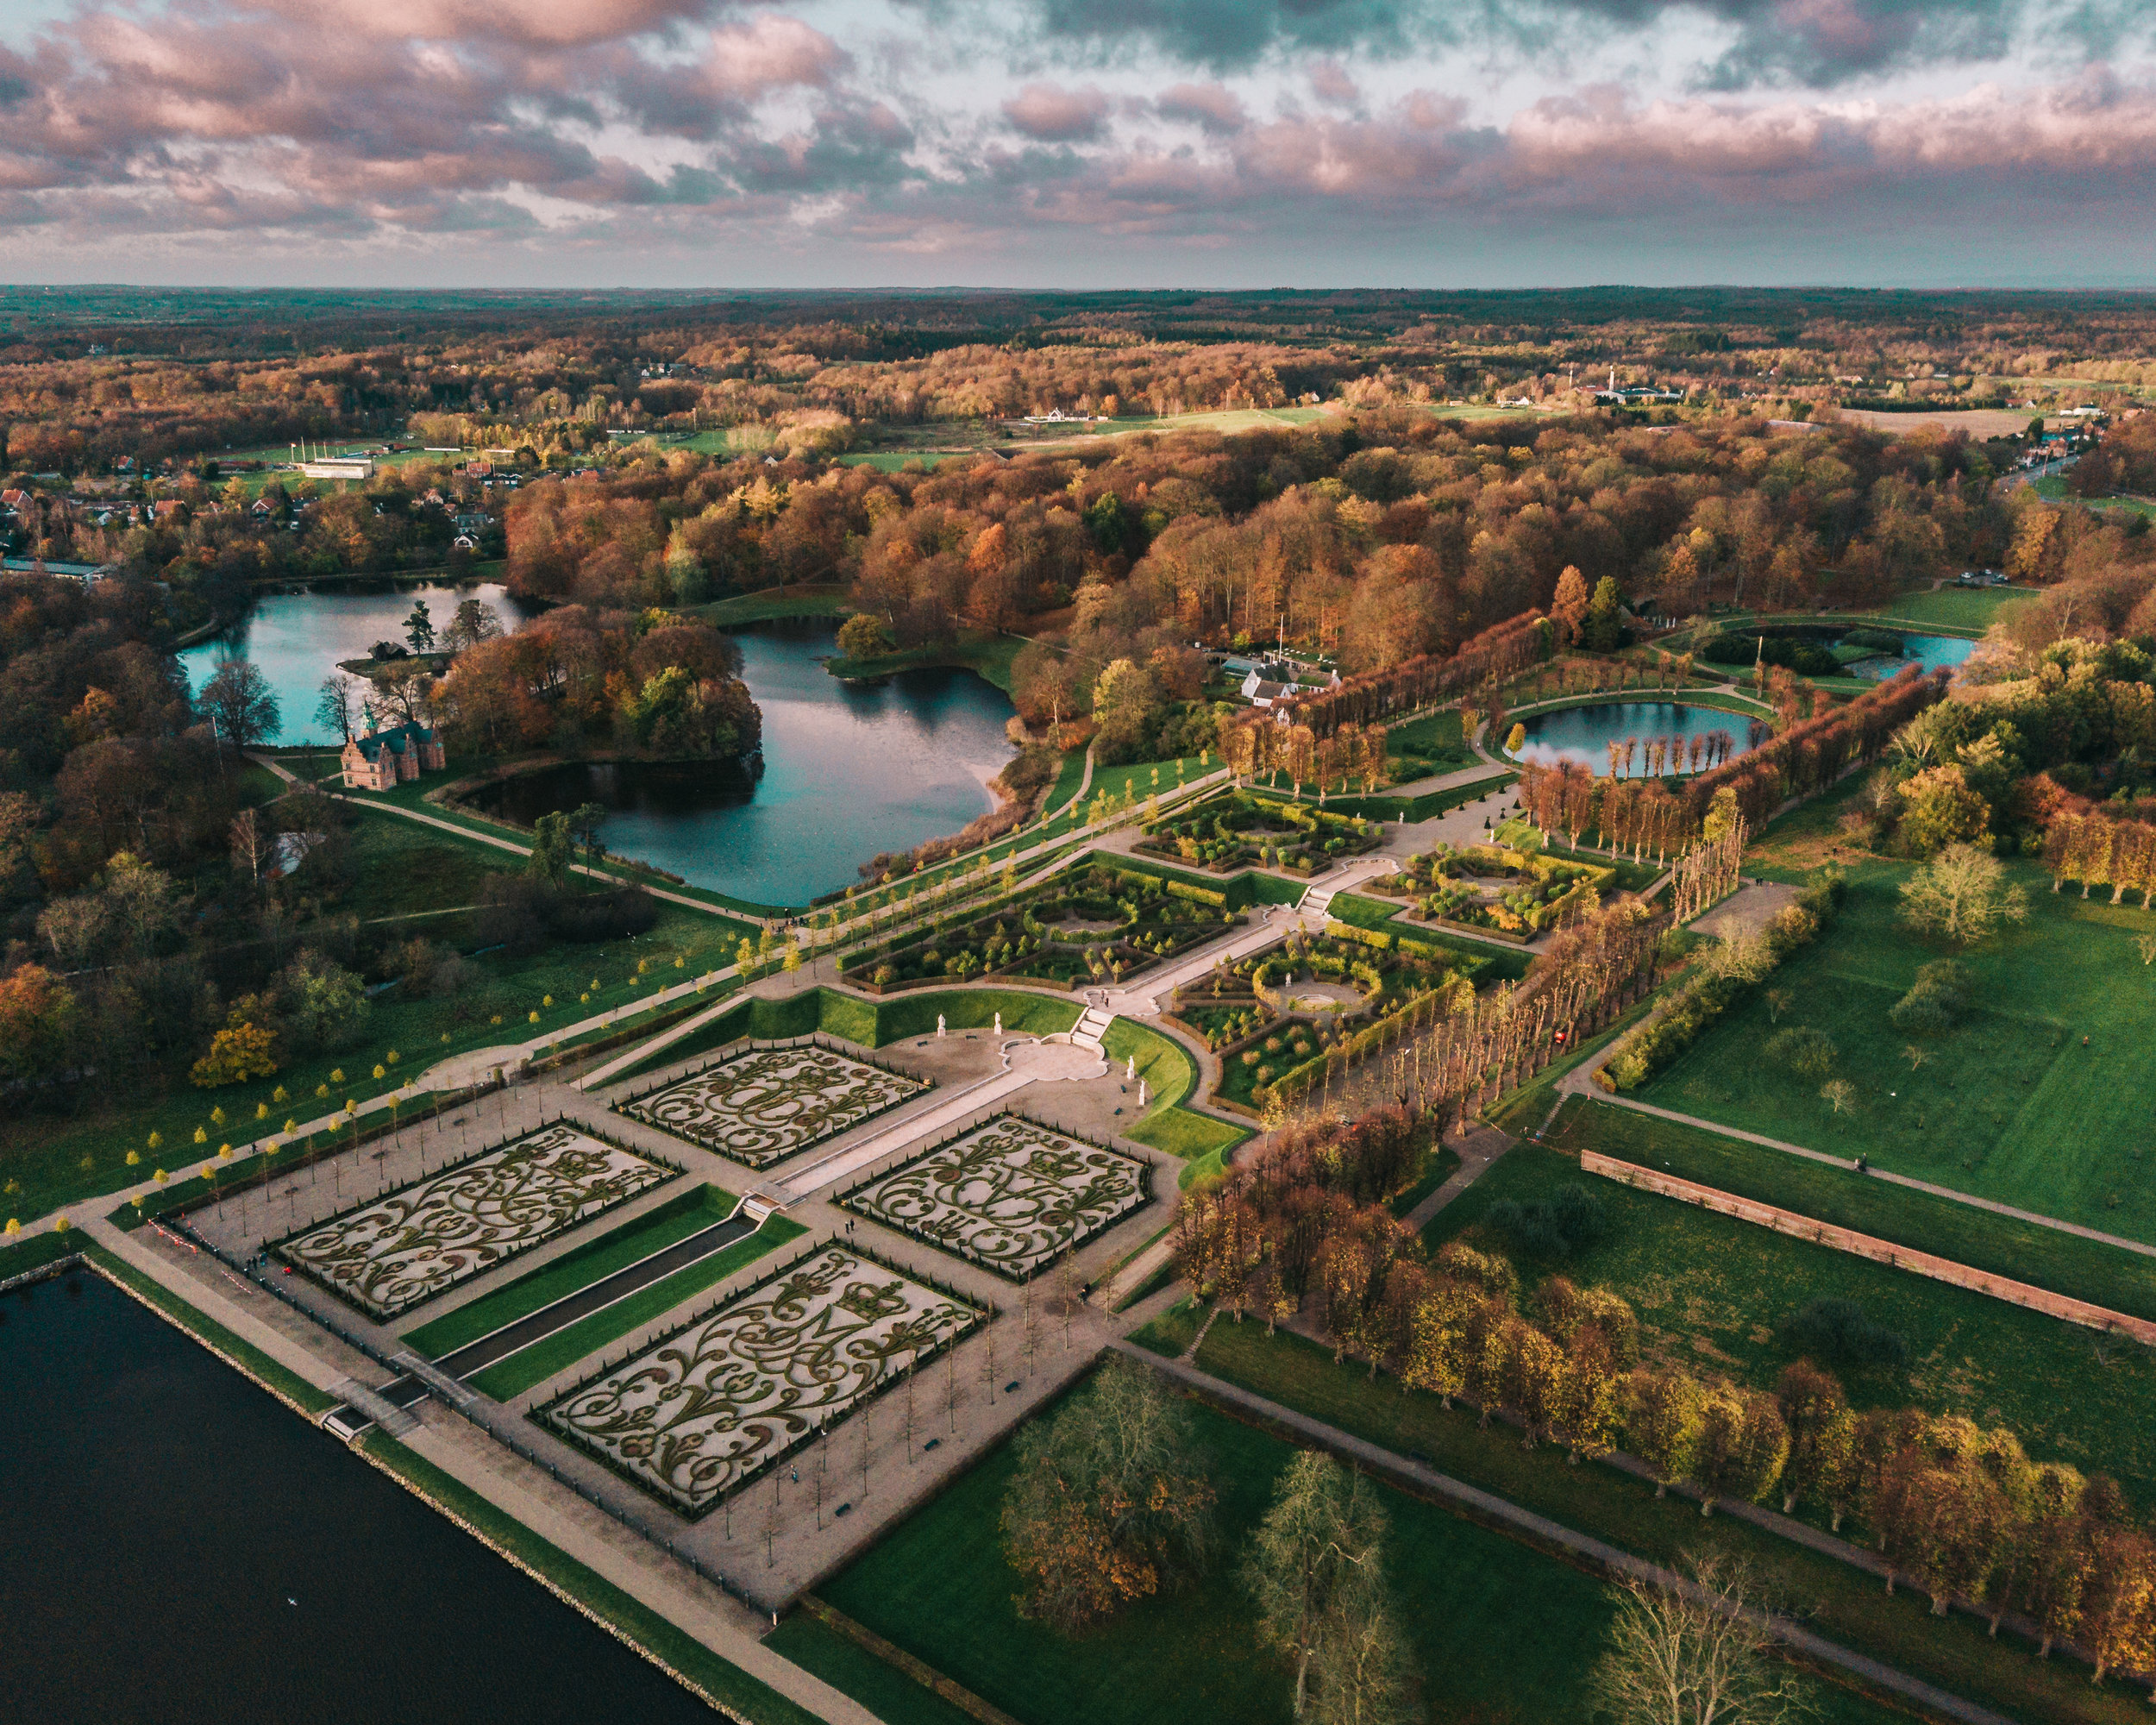 Aerial view of the garden.